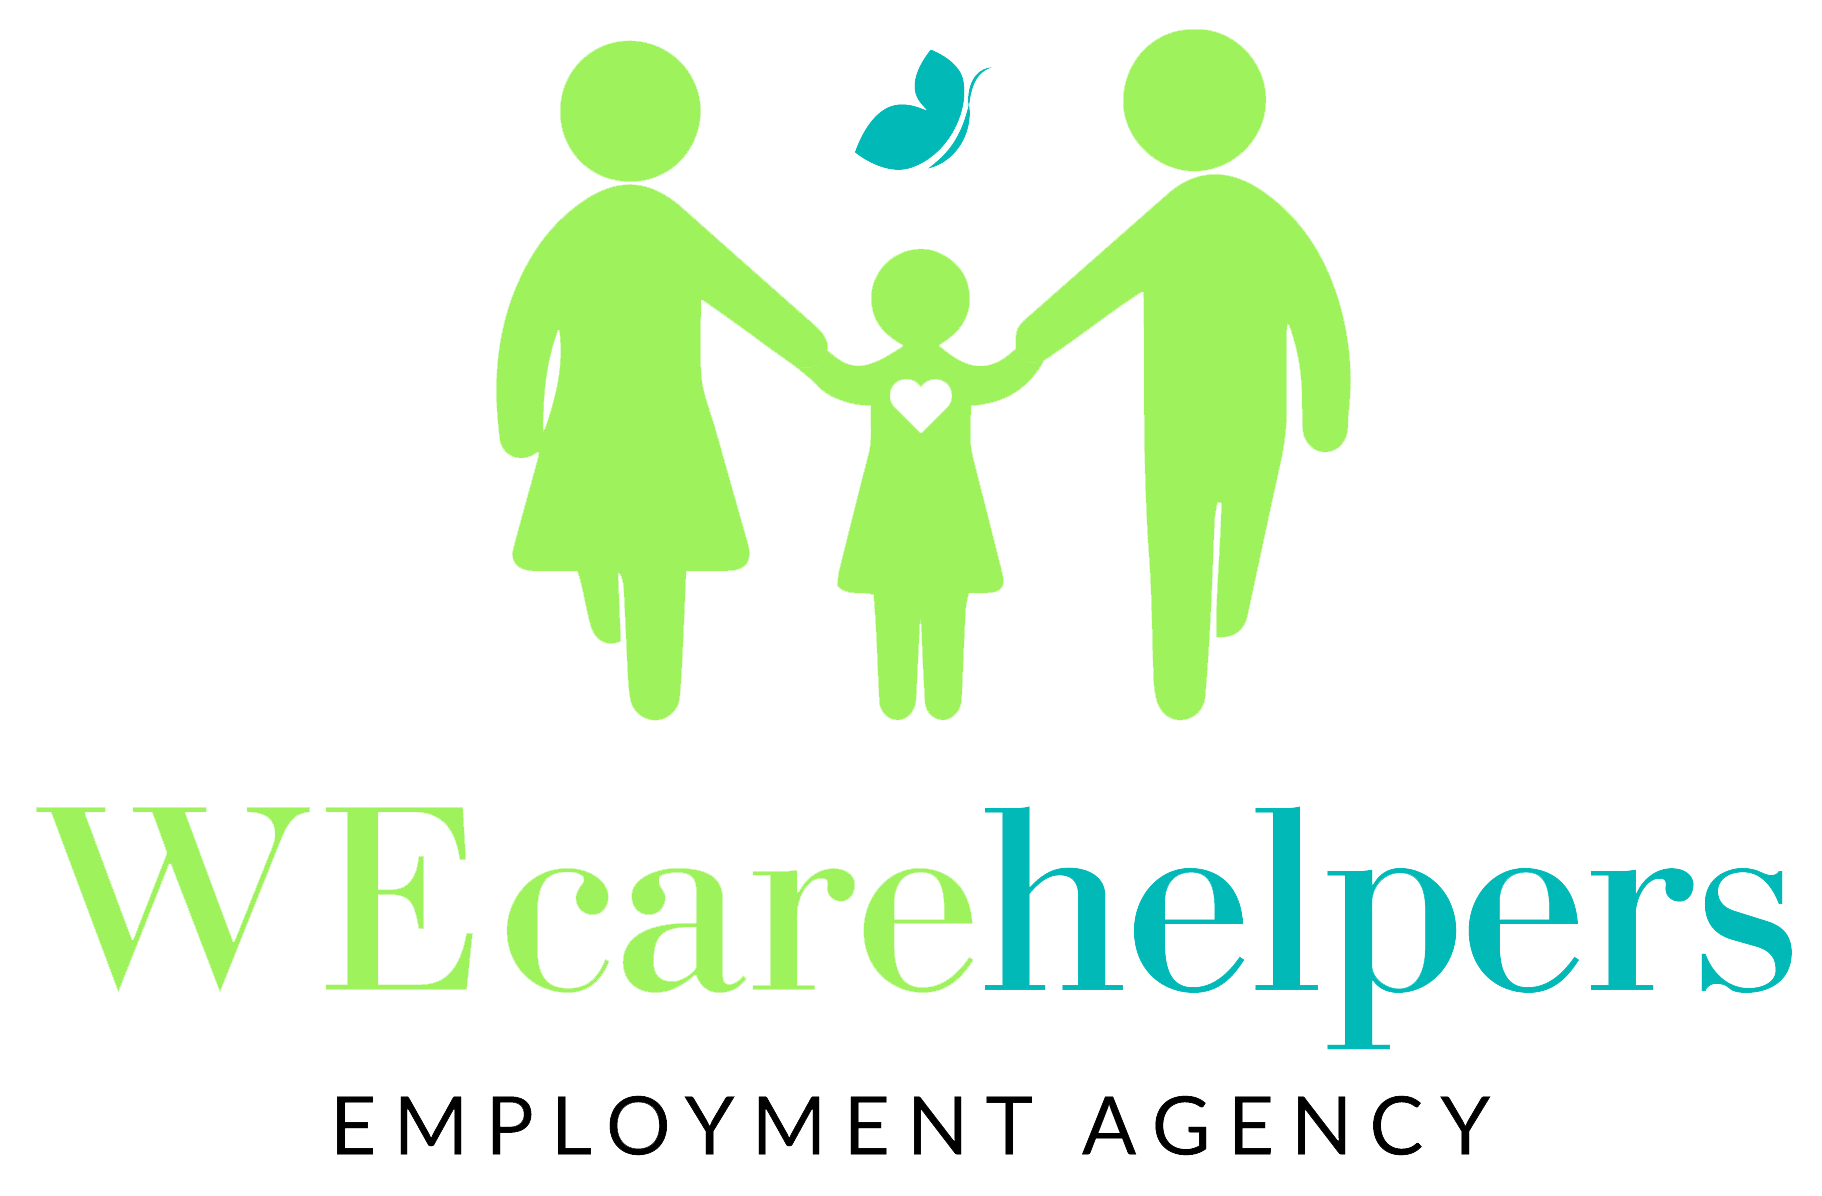 WEcarehelpers Employment Agency